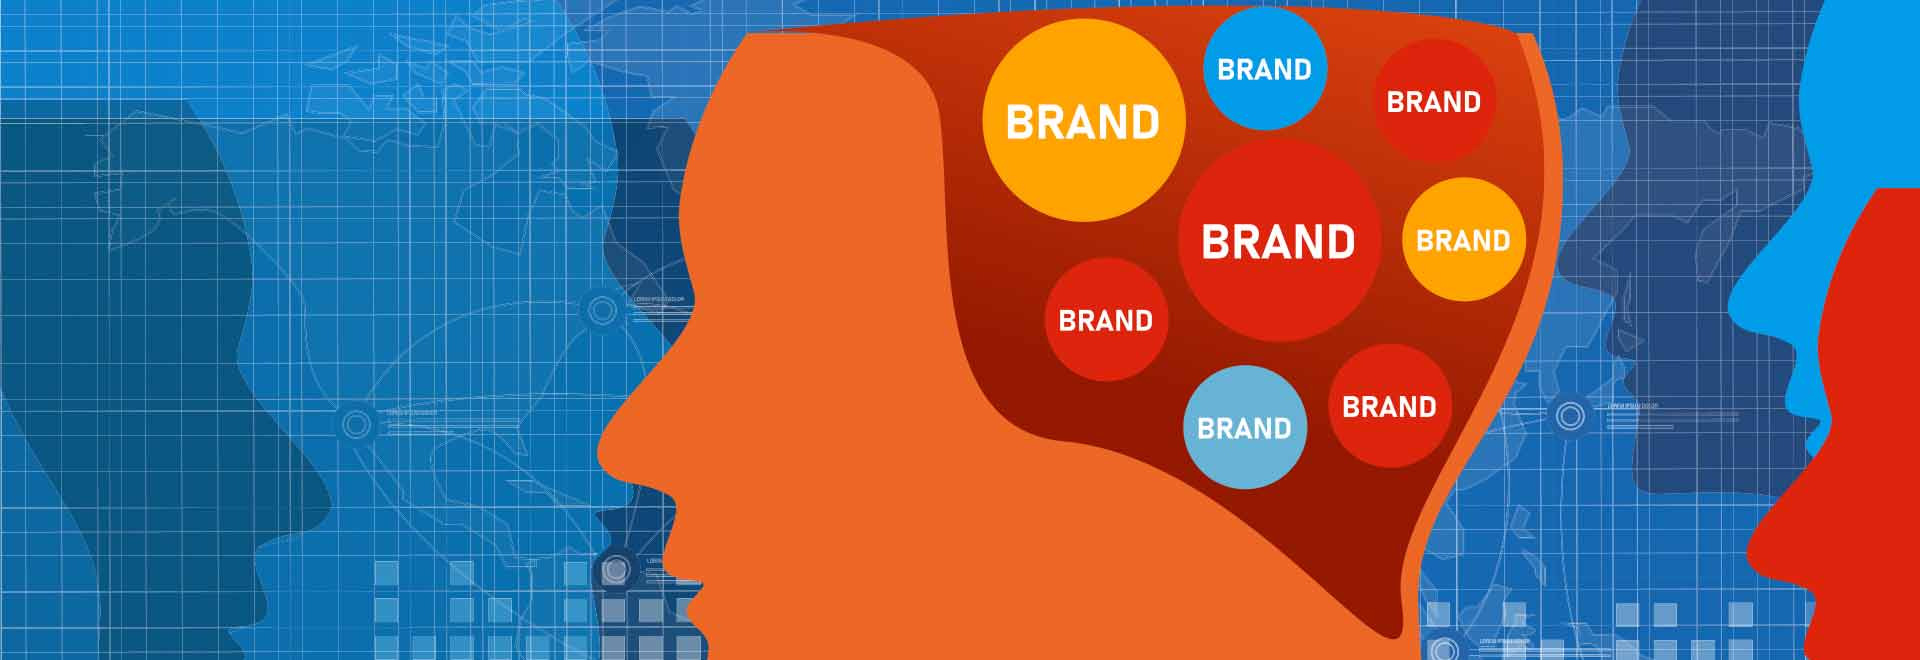 image representing brand positioning in the customer mind